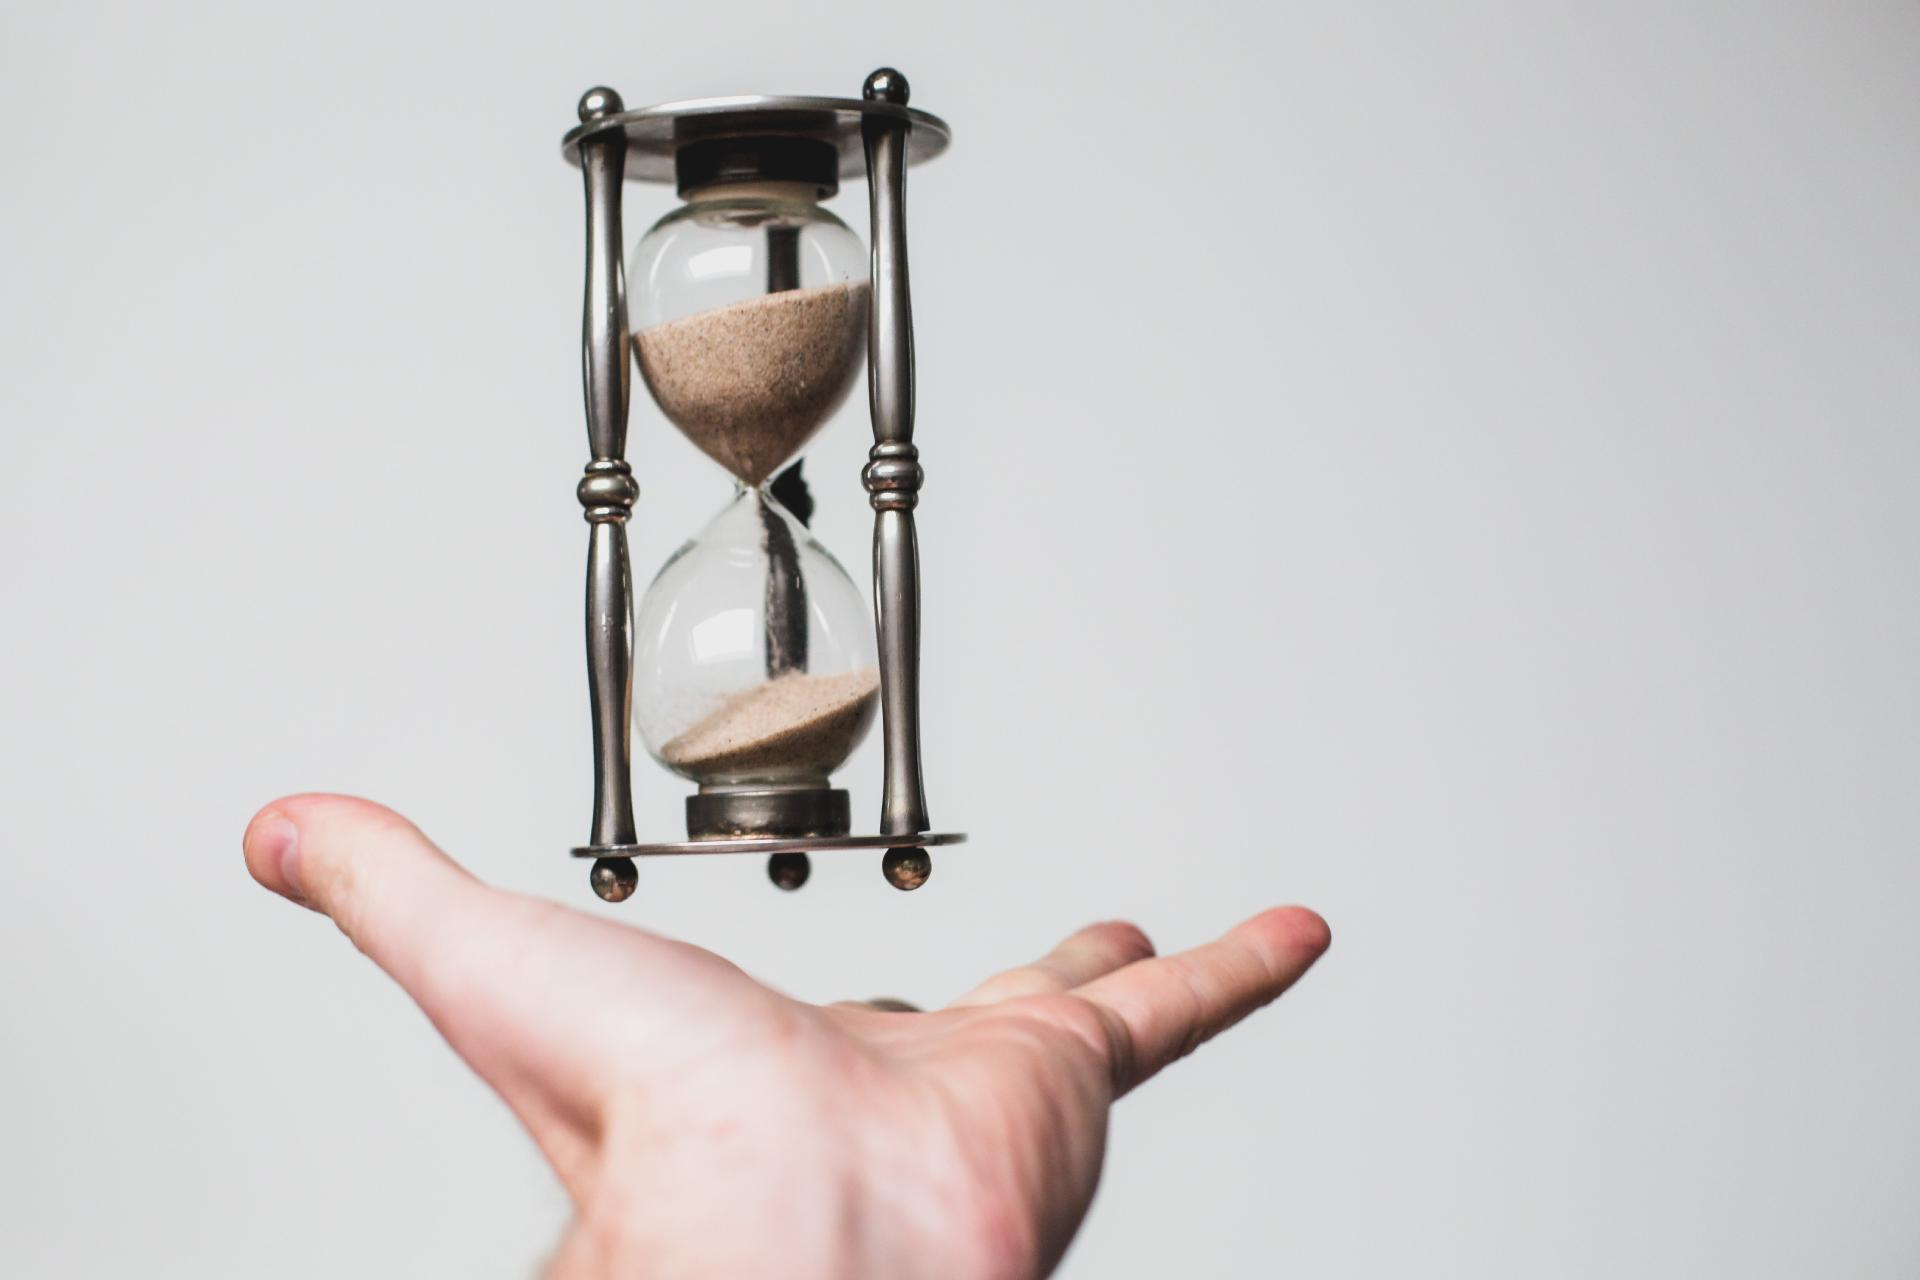 Saving Time with Delivery Management Software: How Much Time Do You ACTUALLY Save?